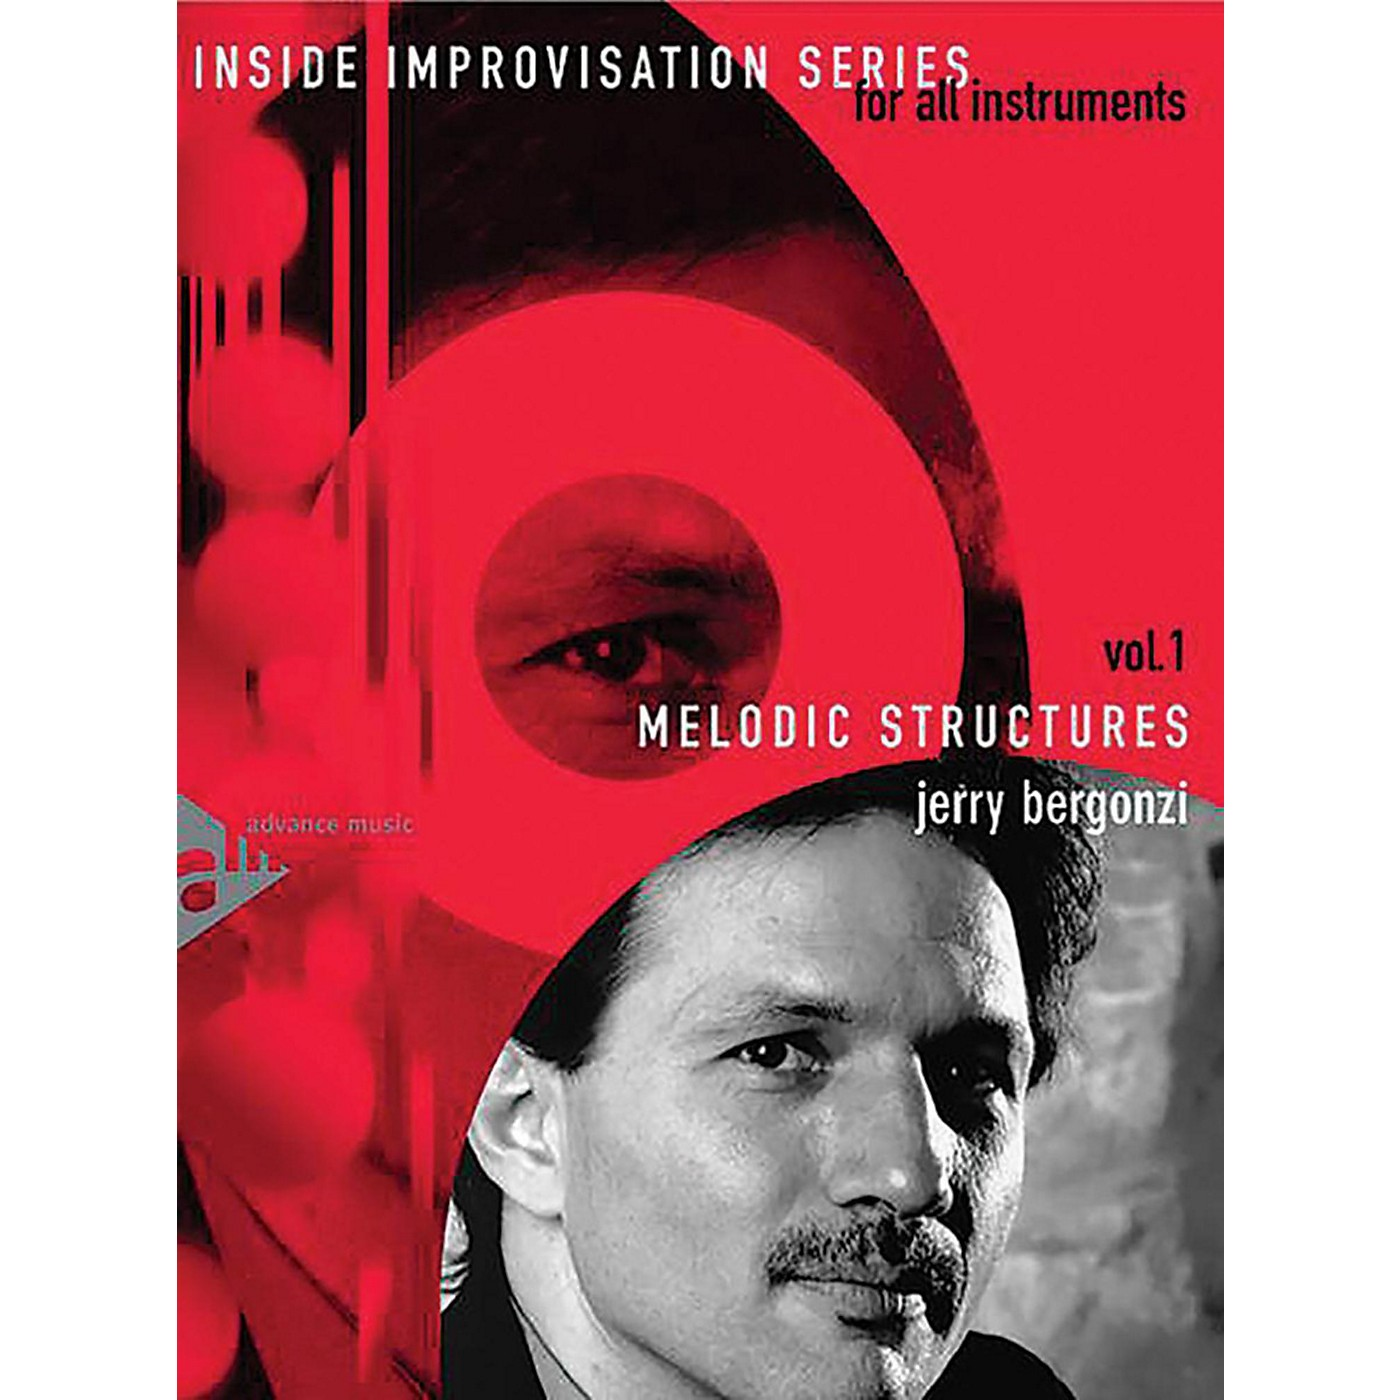 ADVANCE MUSIC Inside Improvisation Series, Vol. 1: Melodic Structures Melody Instruments (C, B-flat, E-flat, Bass Clef) Book & CD thumbnail